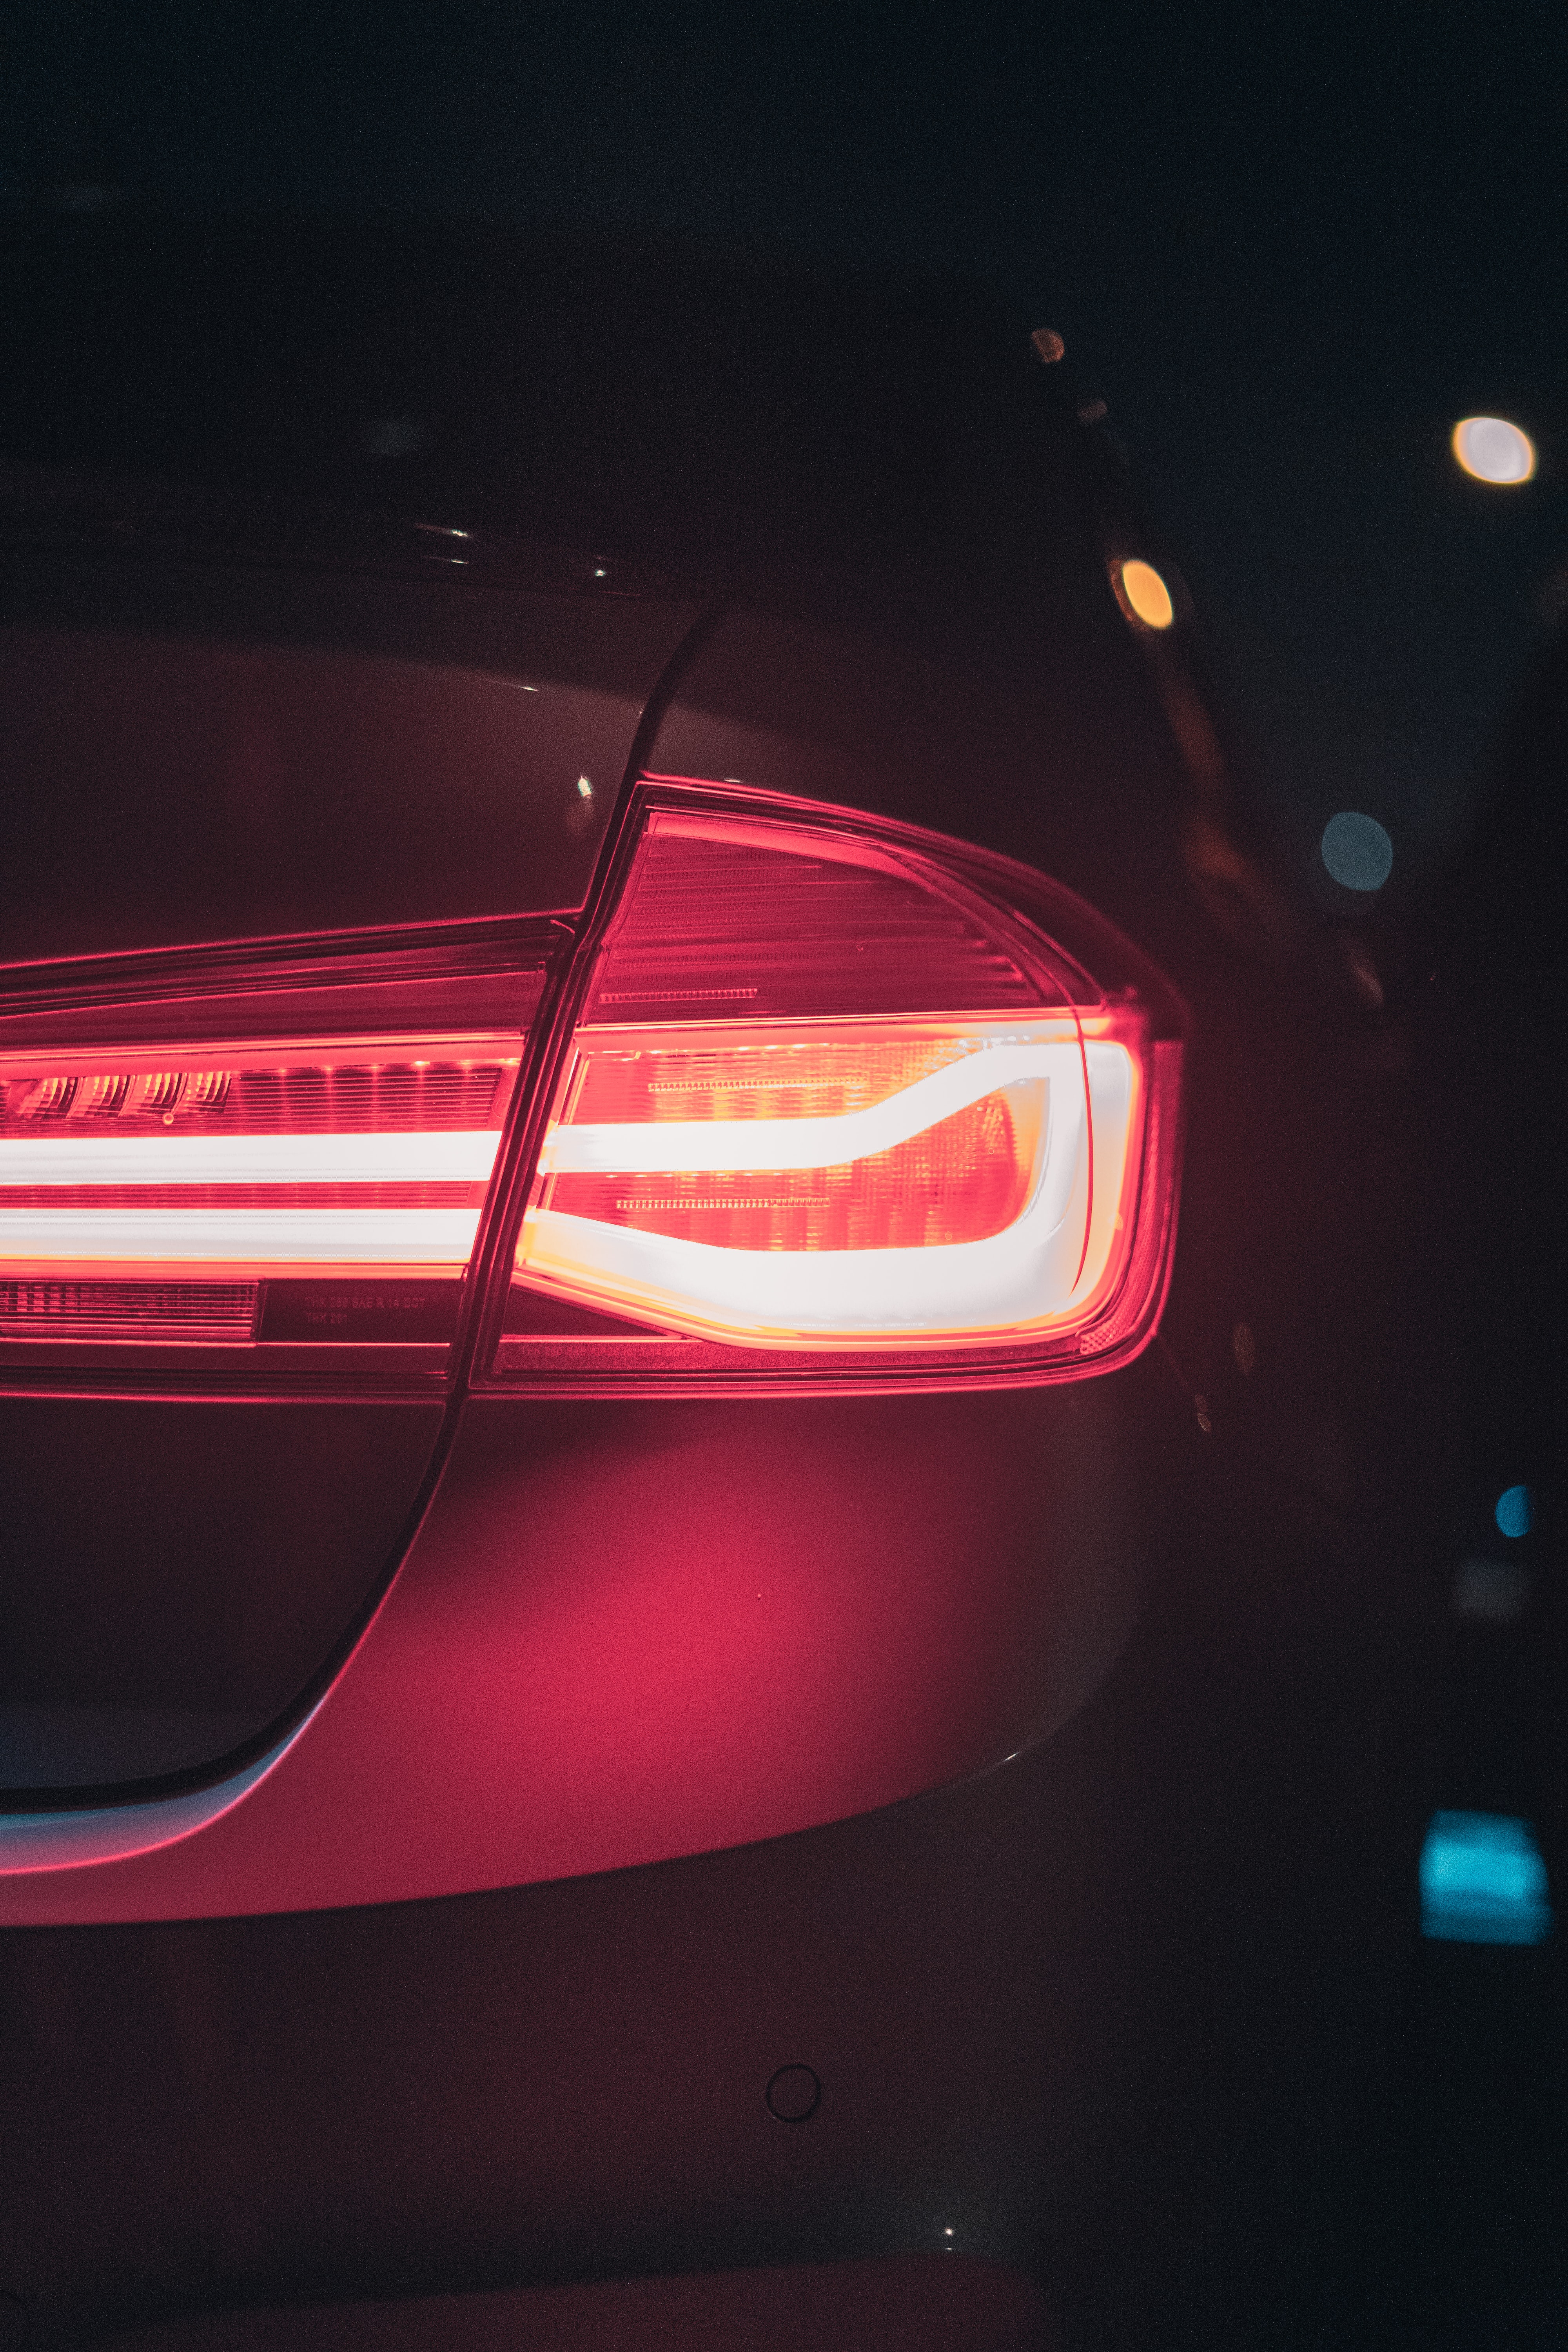 92136 download wallpaper Cars, Car, Lamp, Lantern, Backlight, Illumination screensavers and pictures for free